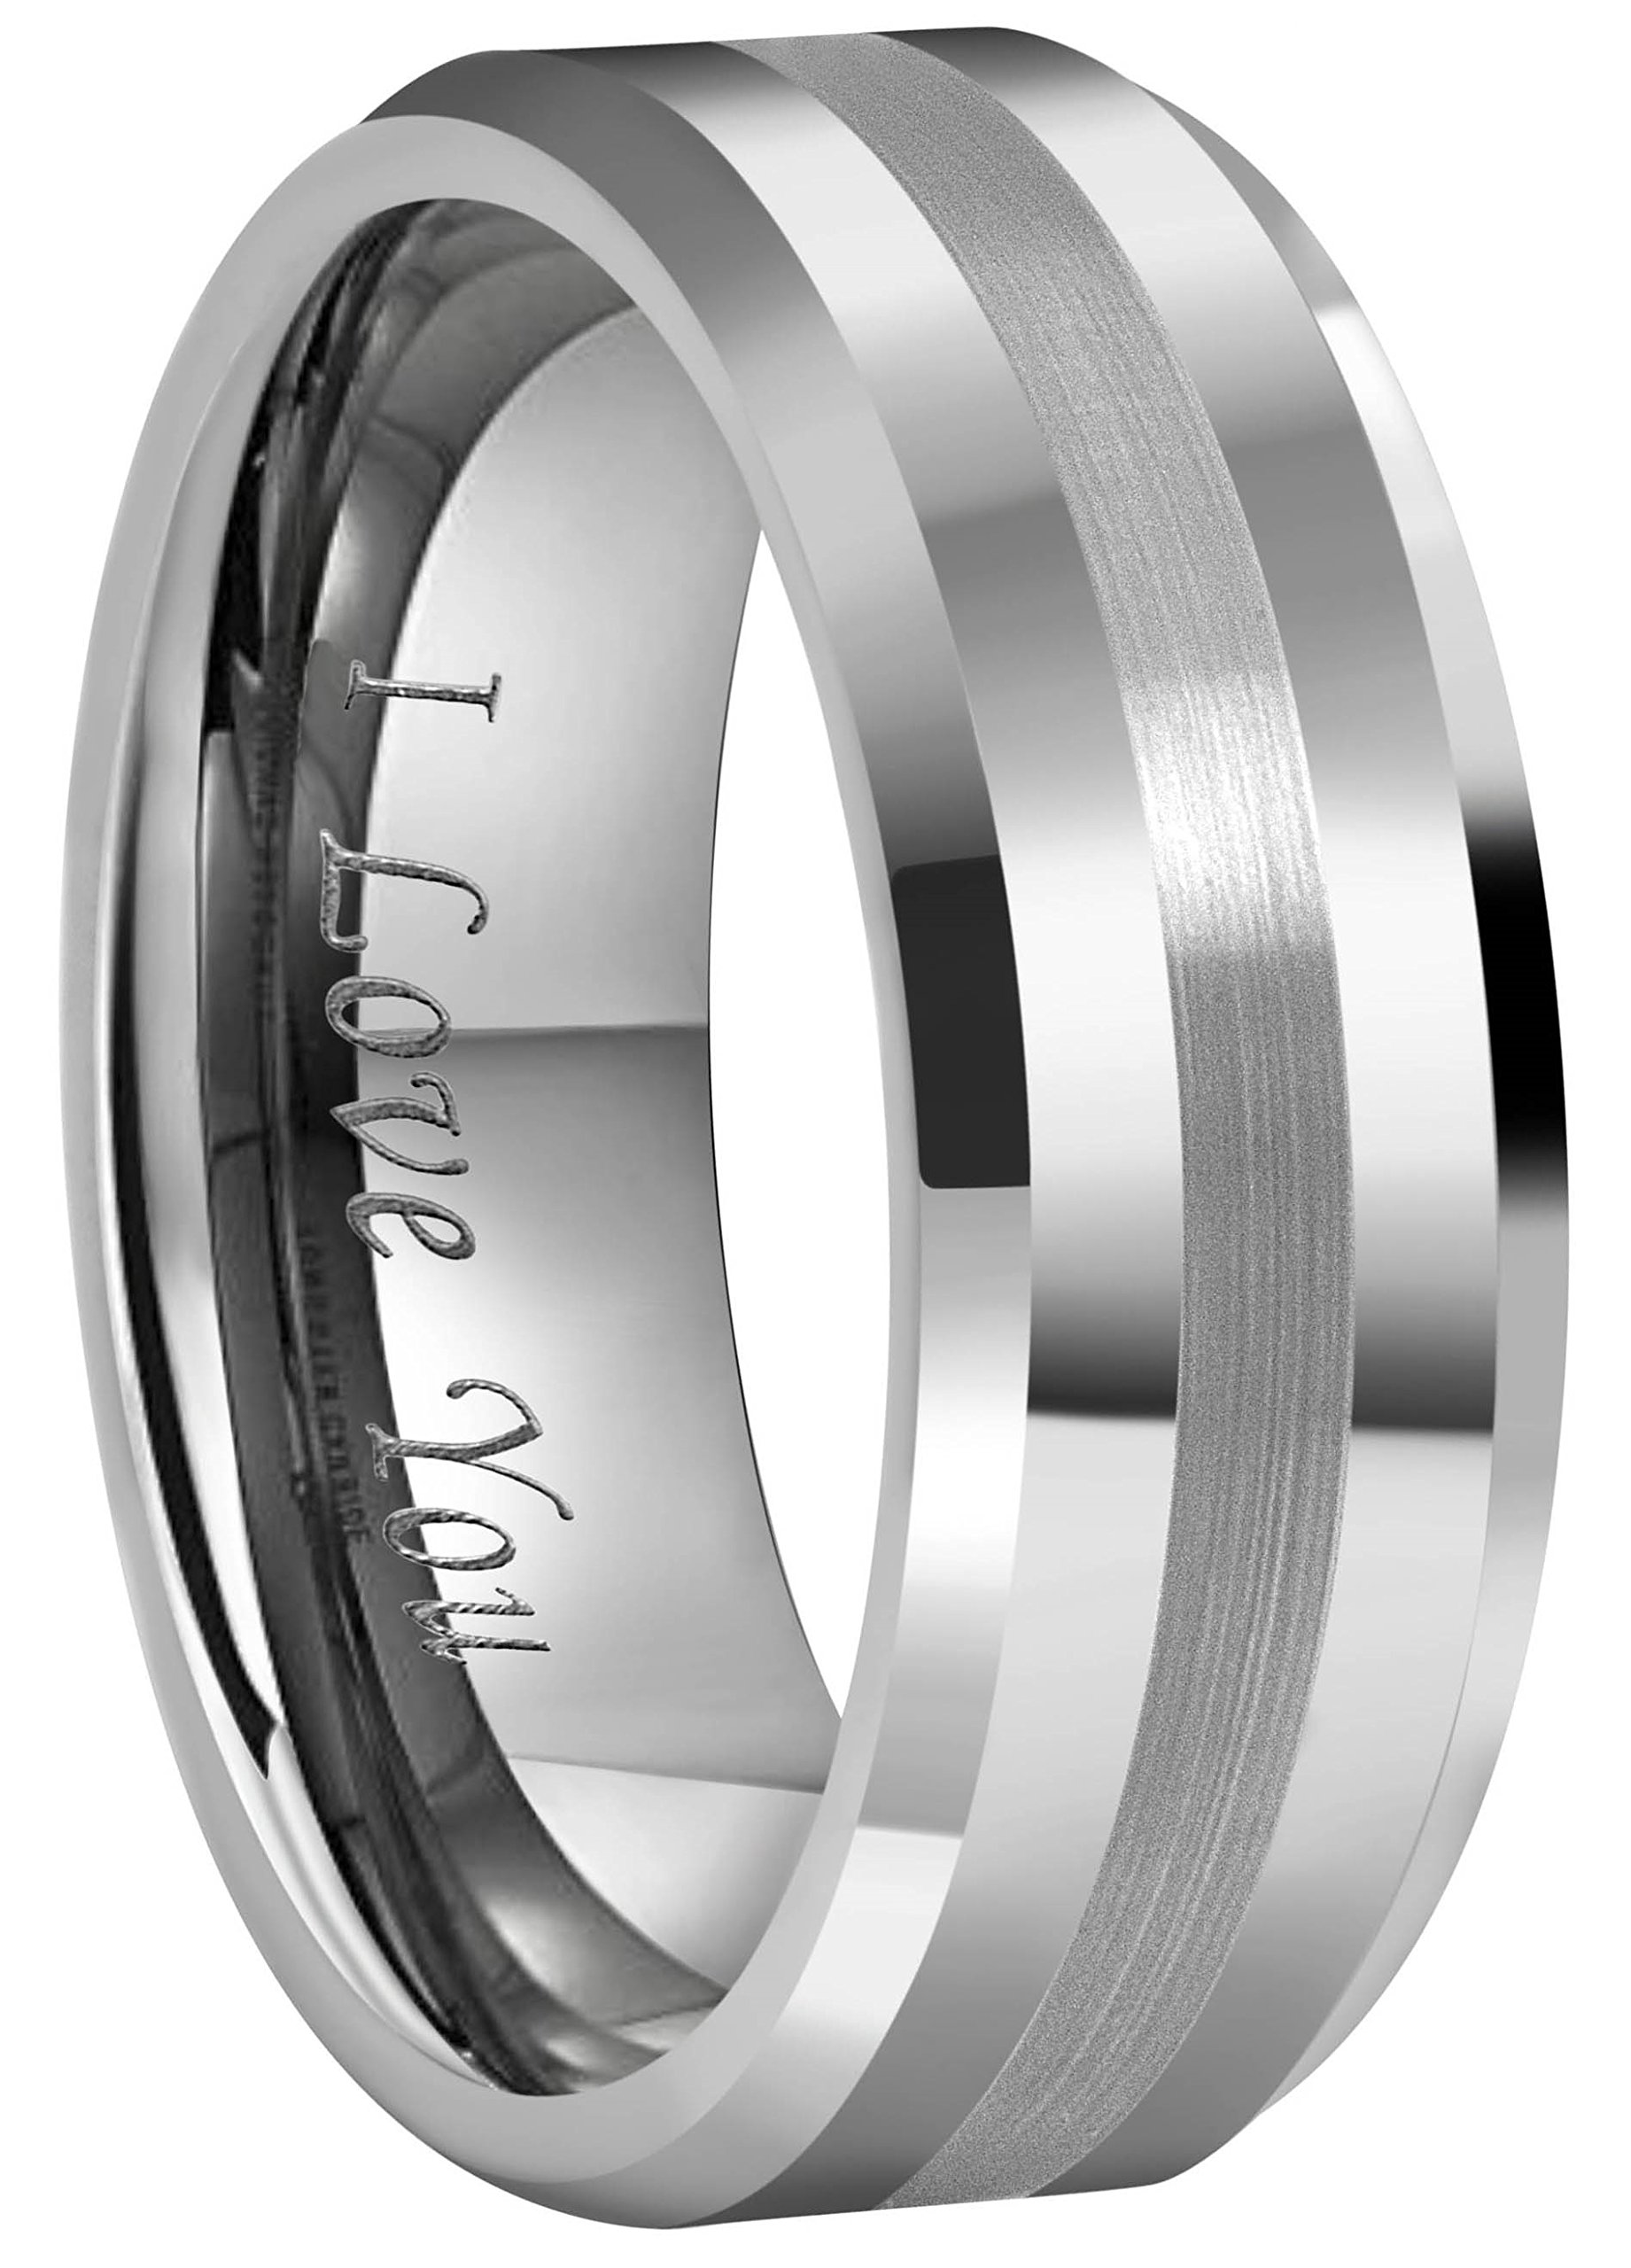 Crownal 6mm 8mm 10mm Tungsten Carbide Wedding Band Ring Engraved ''I Love You'' Men Women Brushed Strip Beveled Edge (8mm,12)